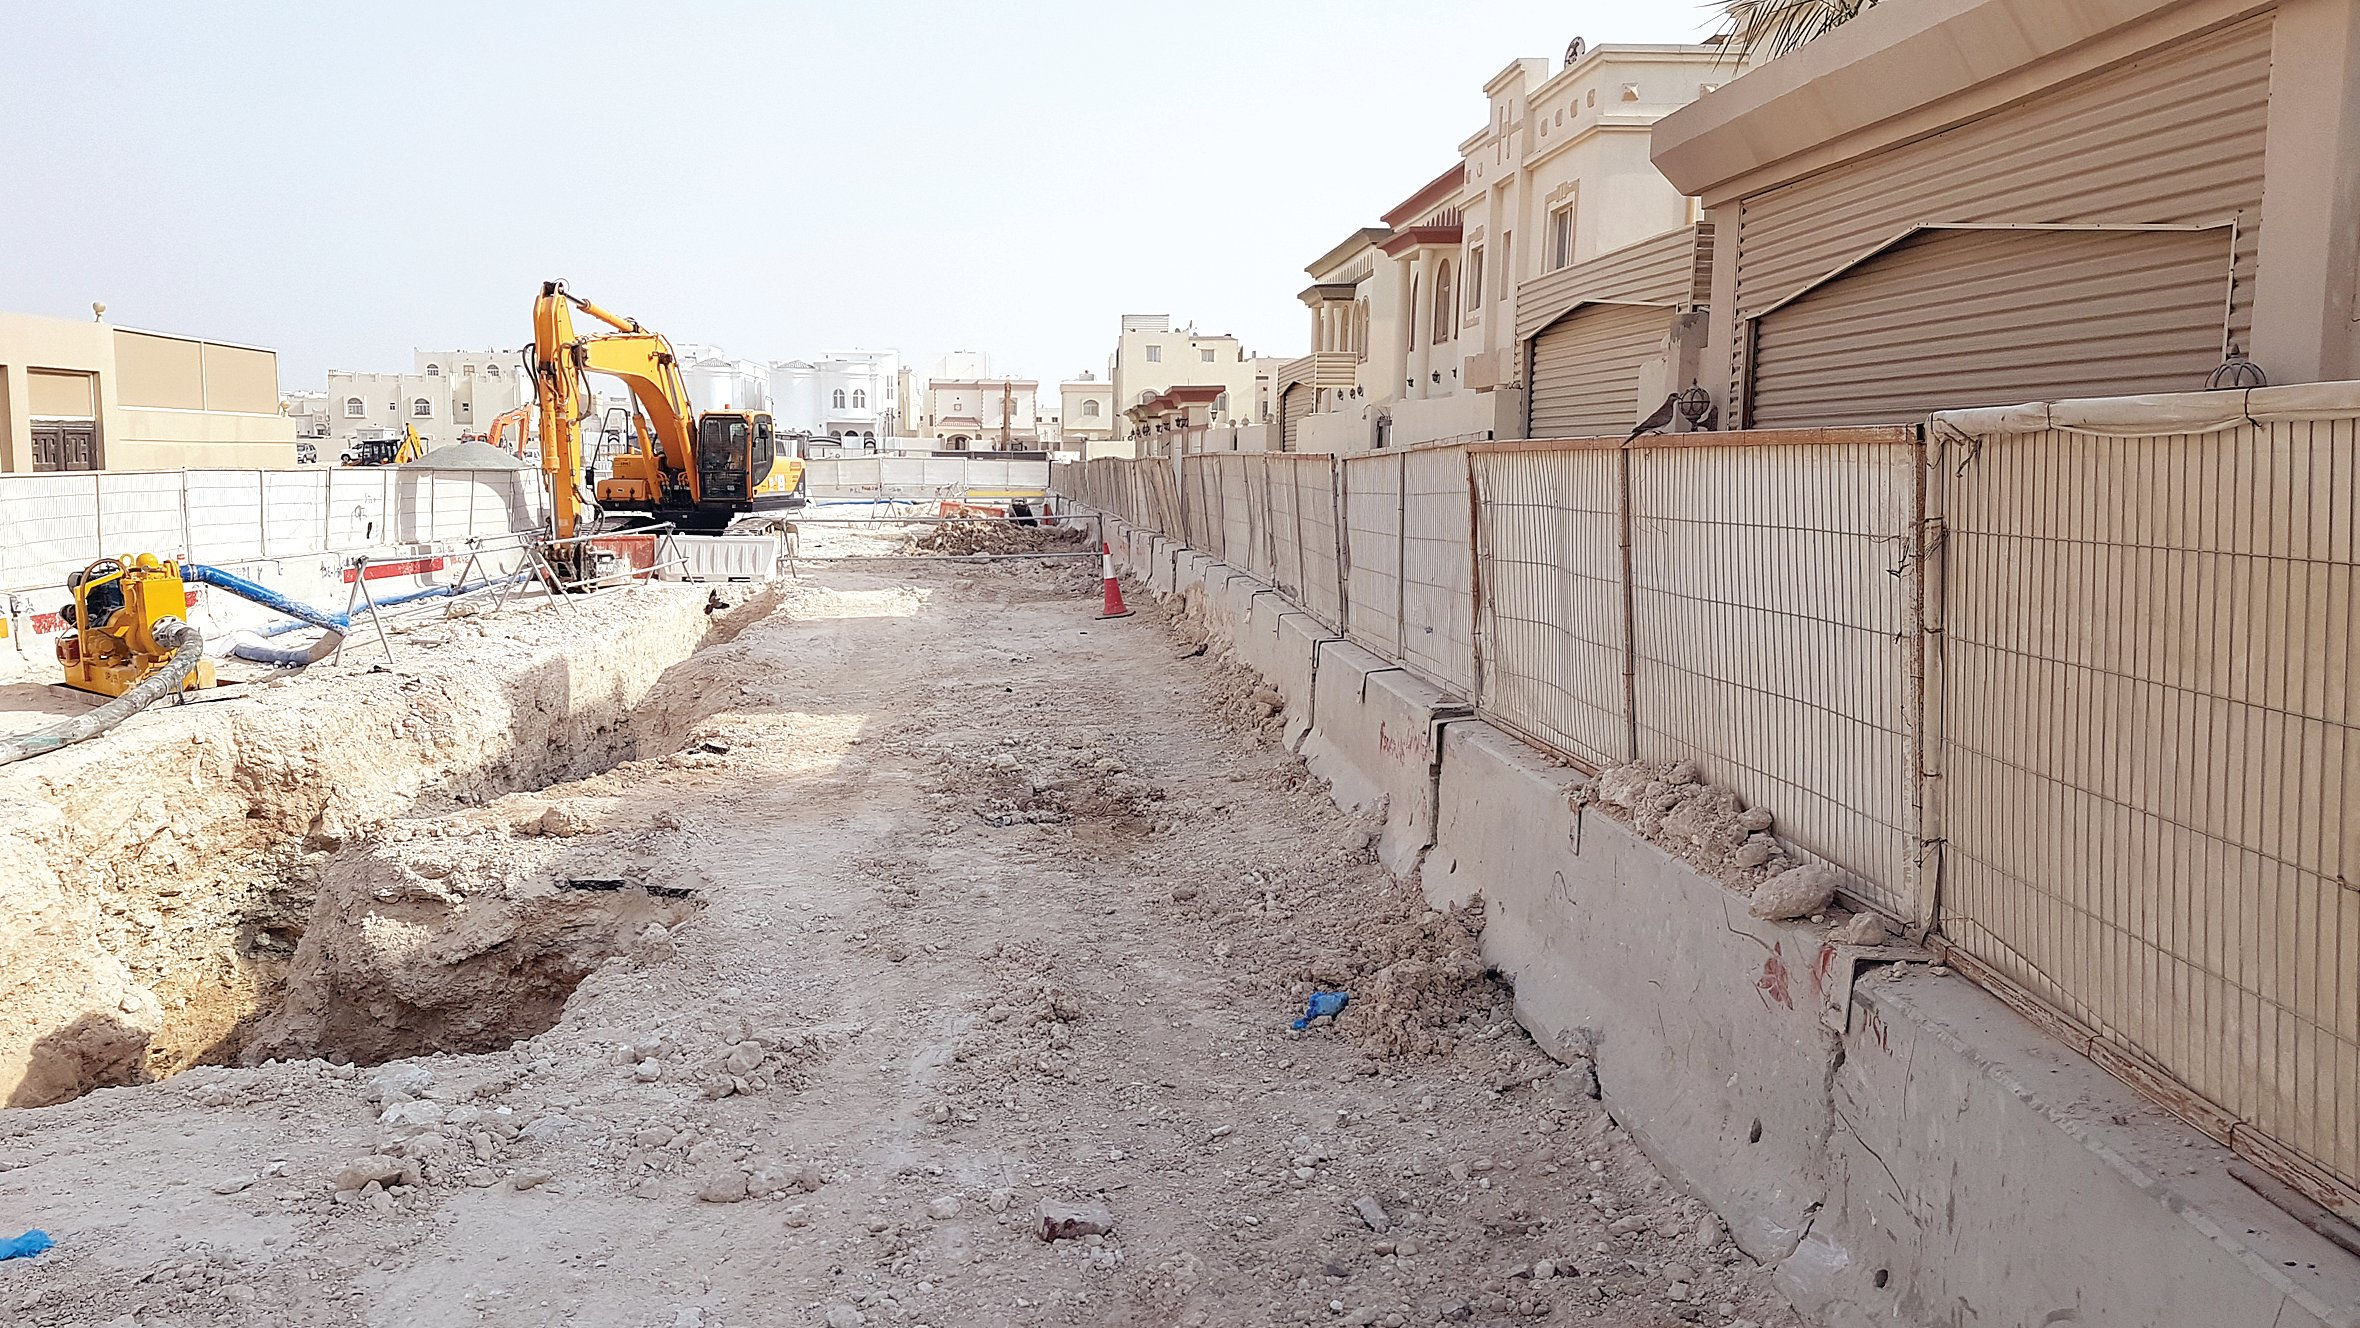 Infrastructure works are disturbing the residents of Al Meshaf streets